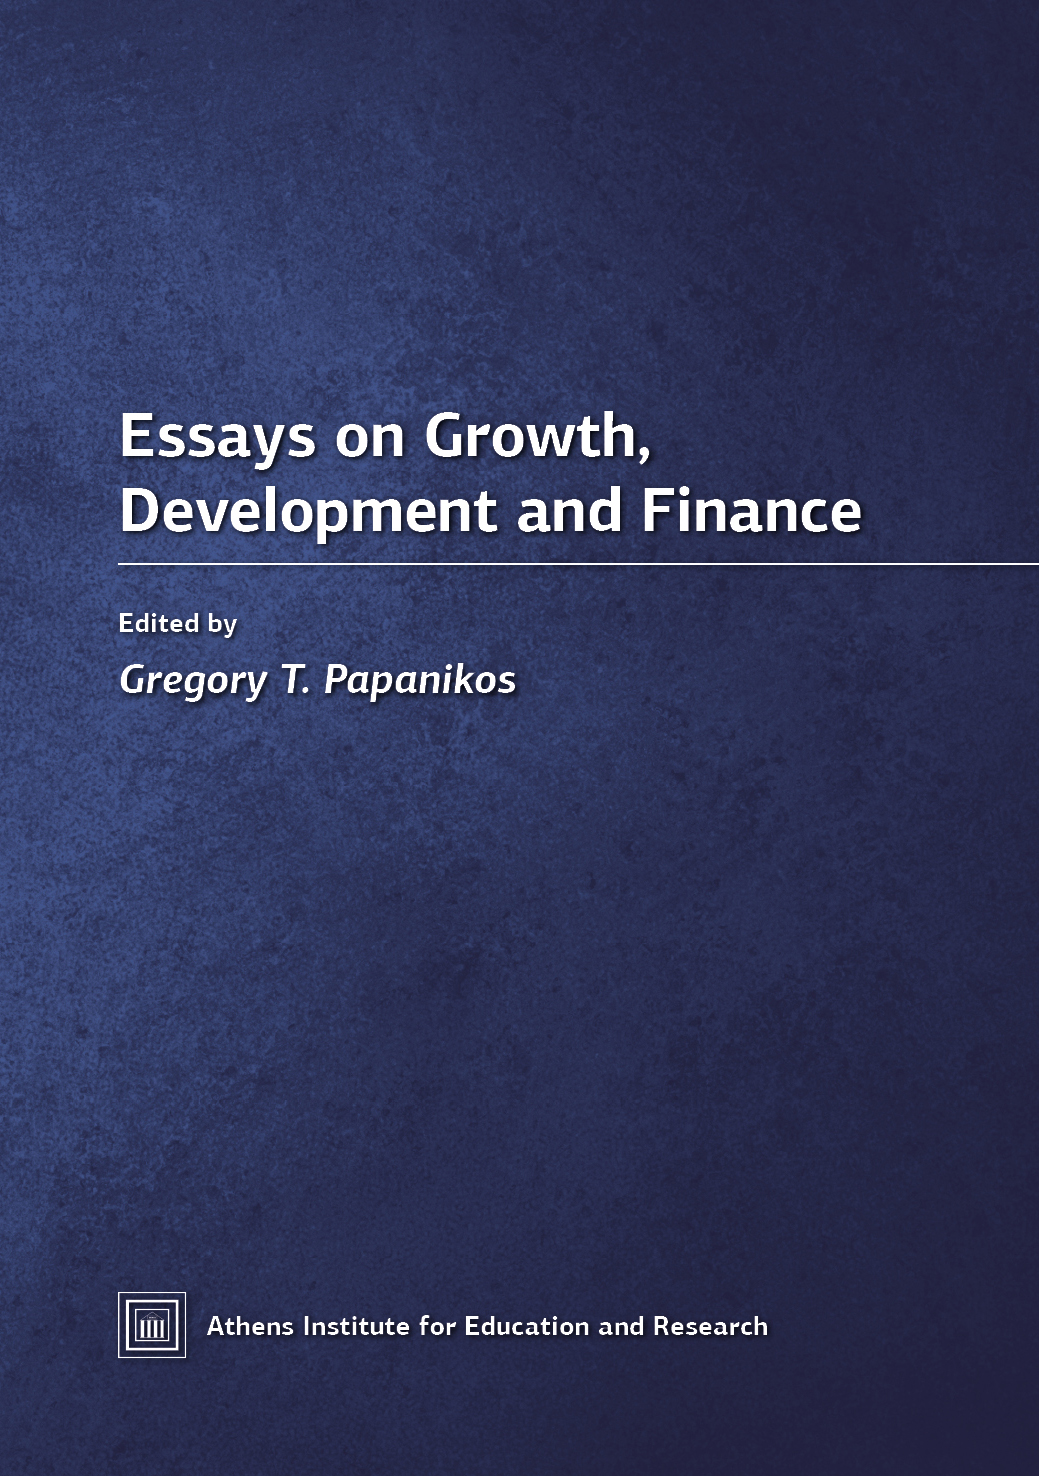 The Impact of Policy on Growth